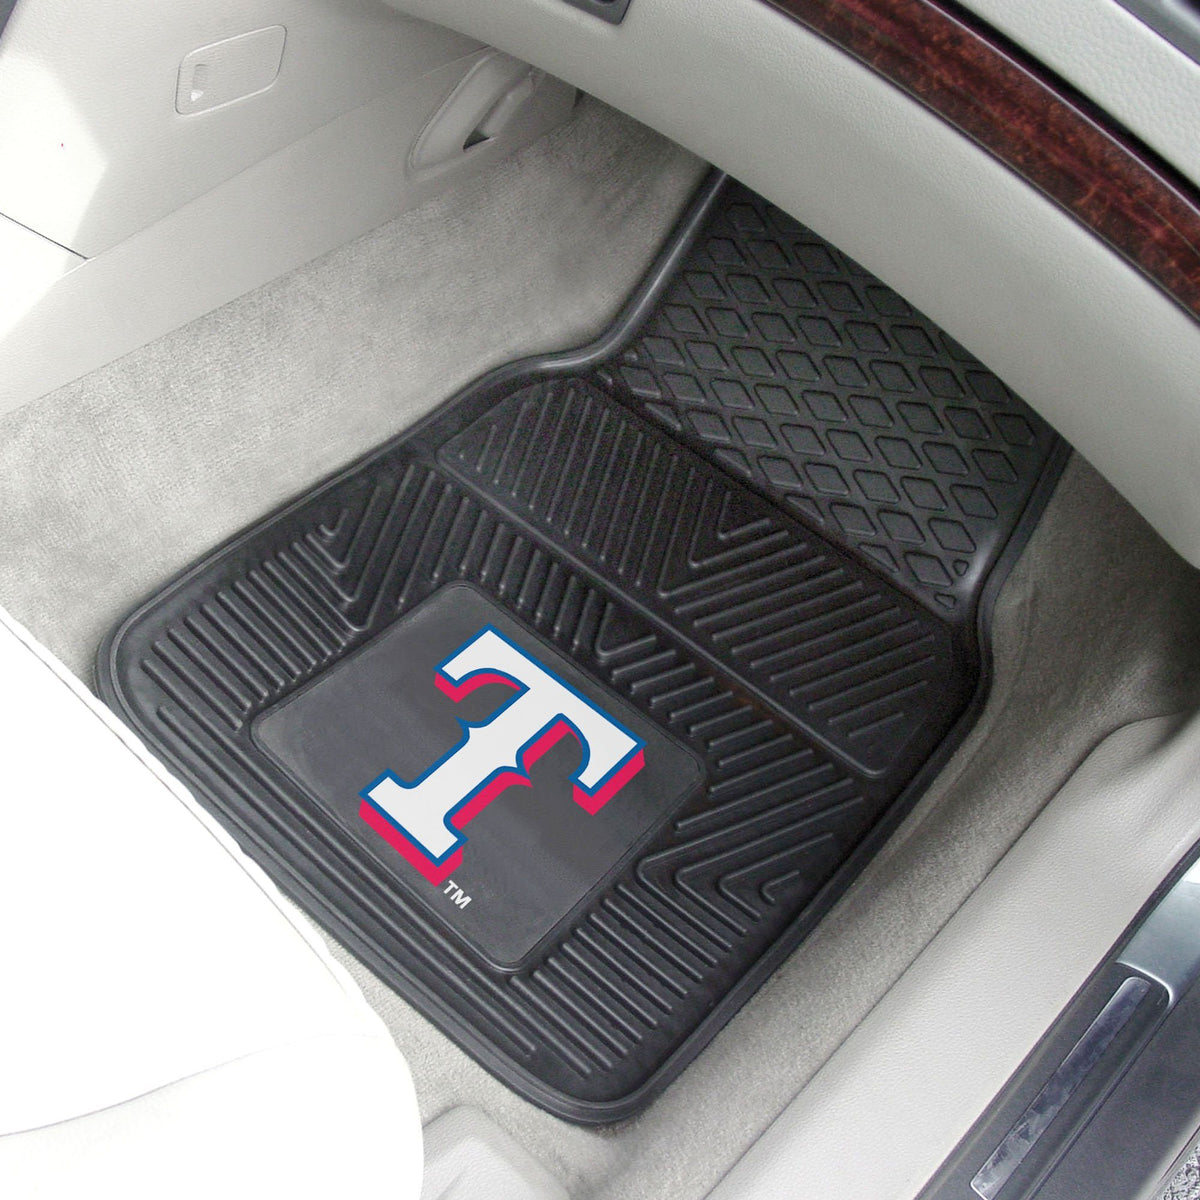 MLB - Vinyl Car Mat, 2-Piece Set MLB Mats, Front Car Mats, 2-pc Vinyl Car Mat Set, MLB, Auto Fan Mats Texas Rangers